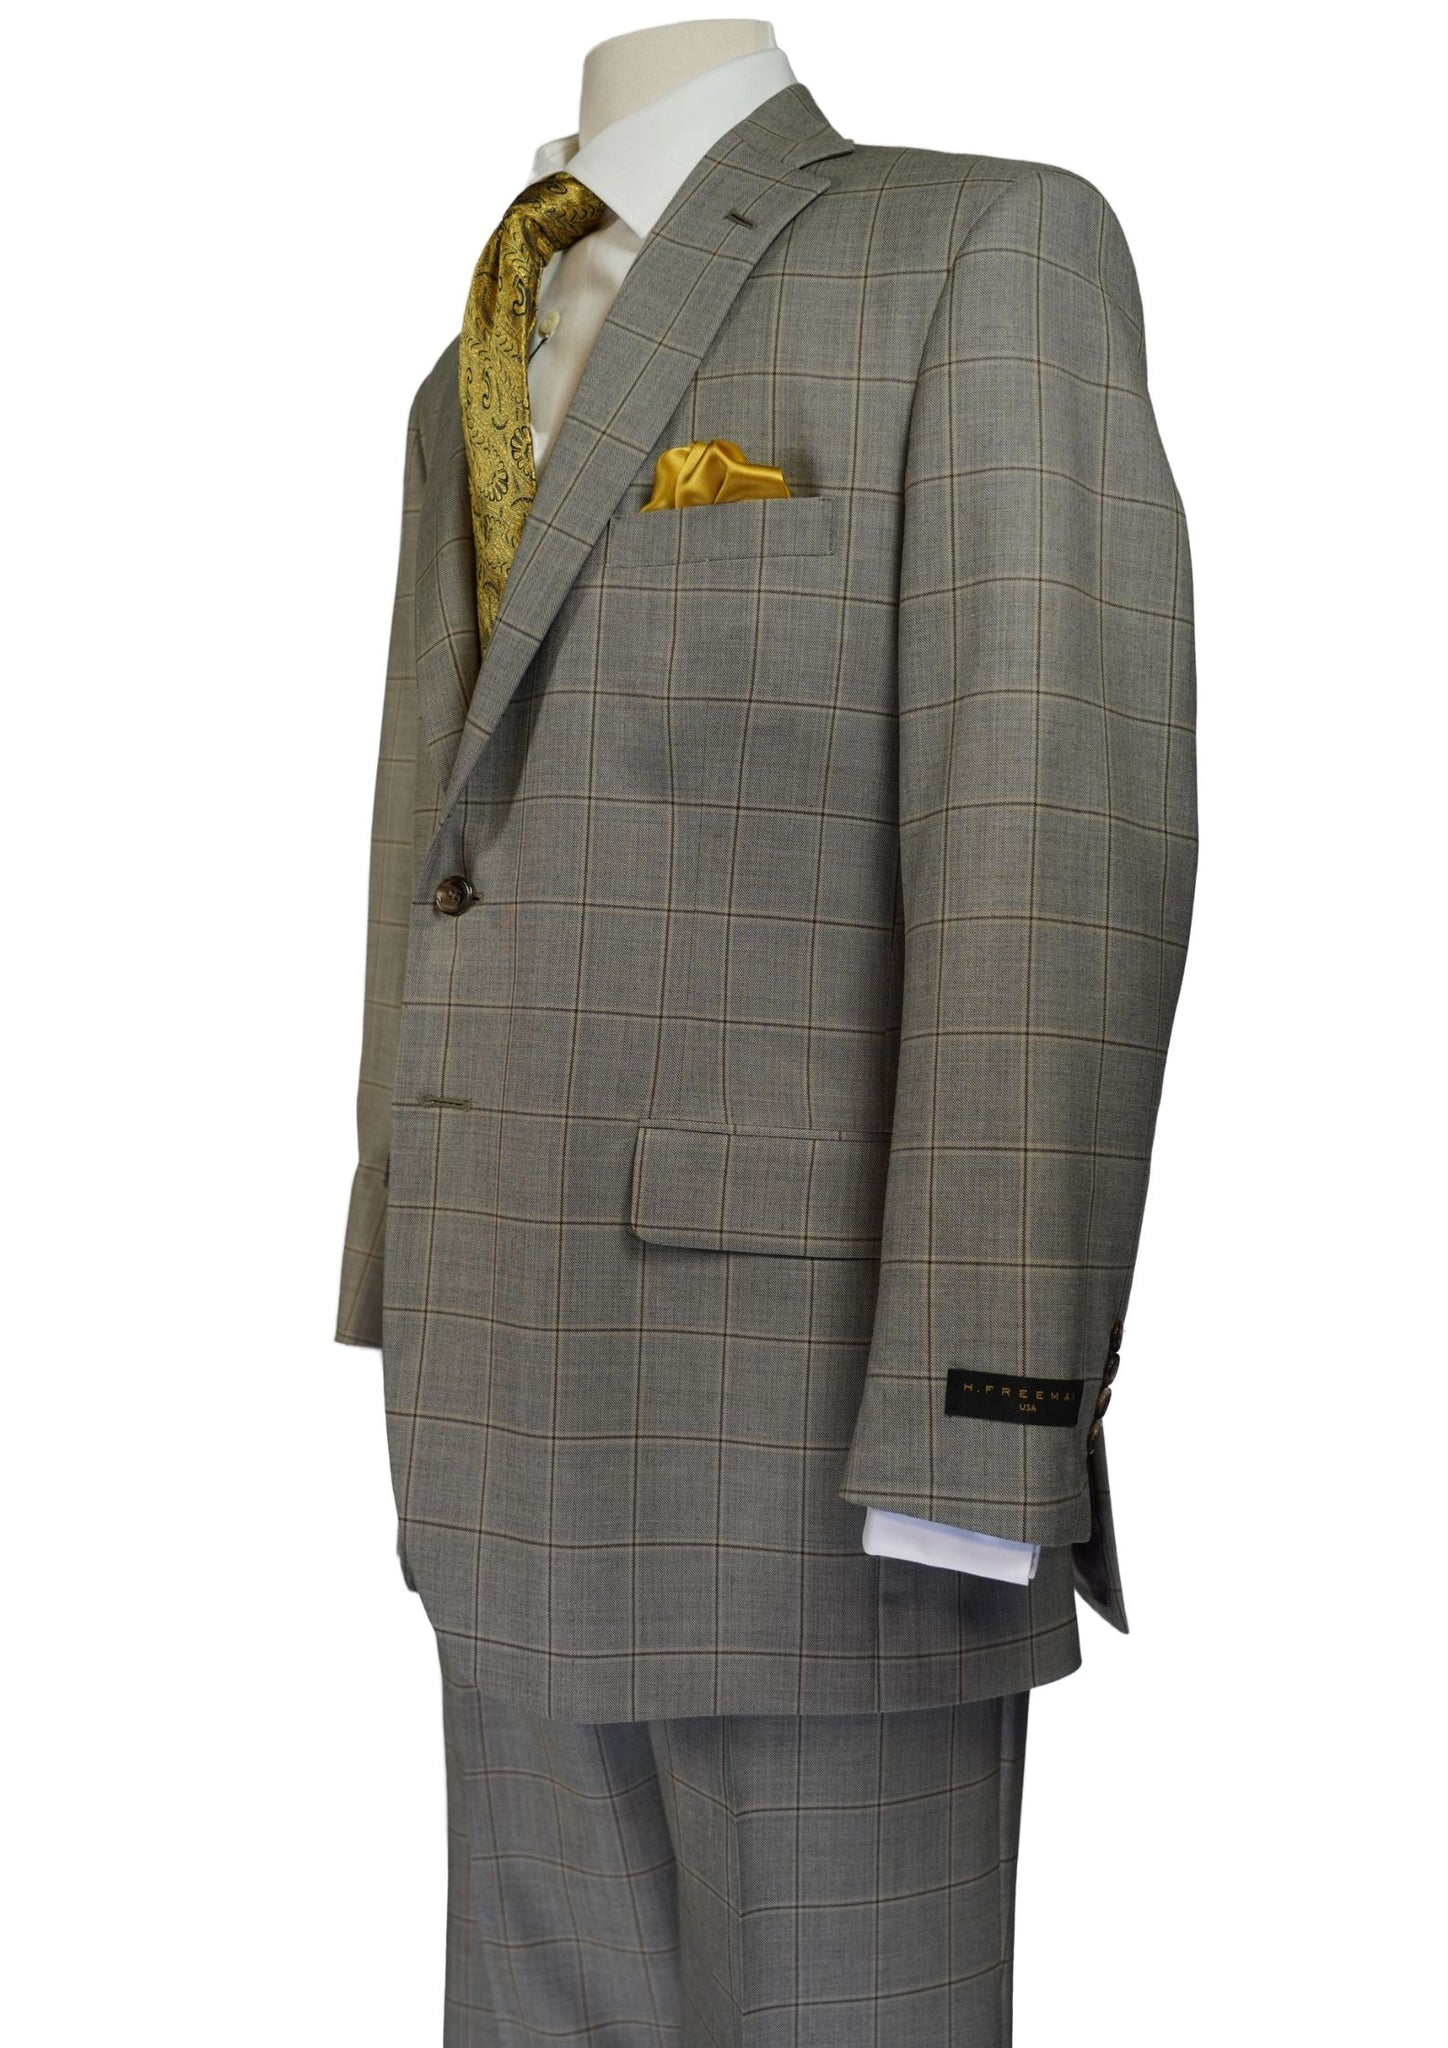 TAN WINDOW PANE SUIT